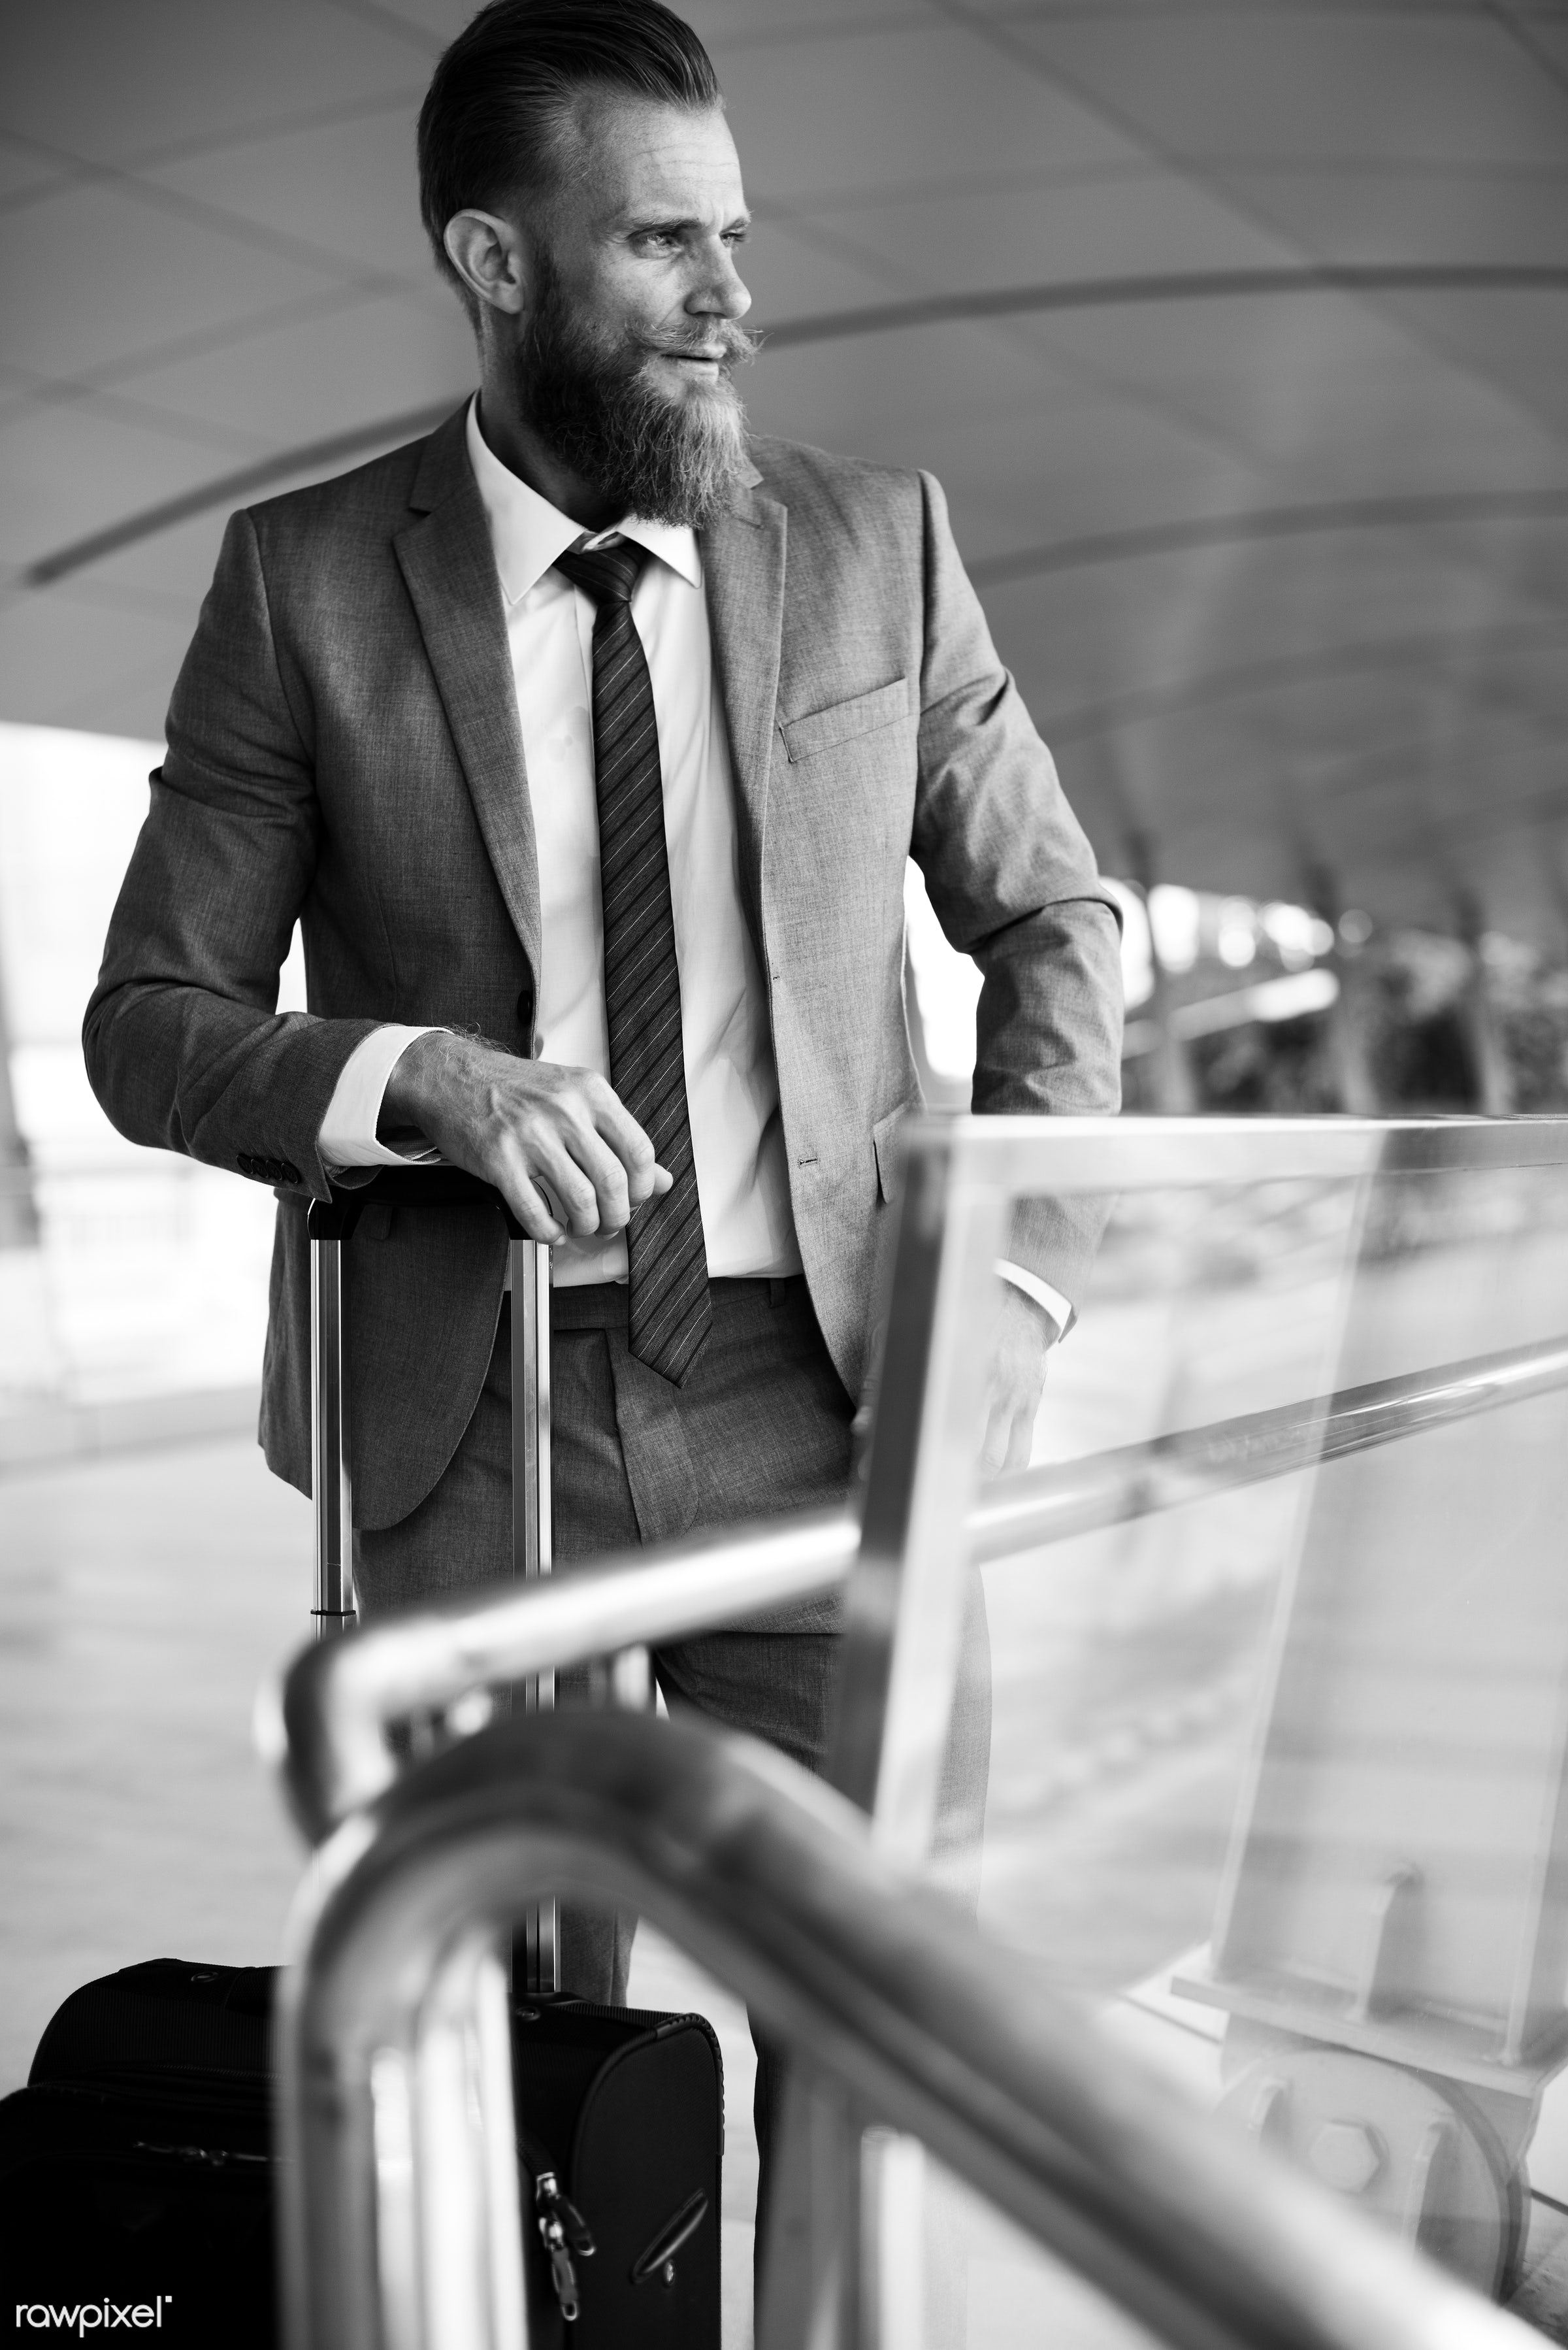 expression, business trip, update, face, person, suit and tie, white collar worker, busy, luggage, indoors, wait, travel,...